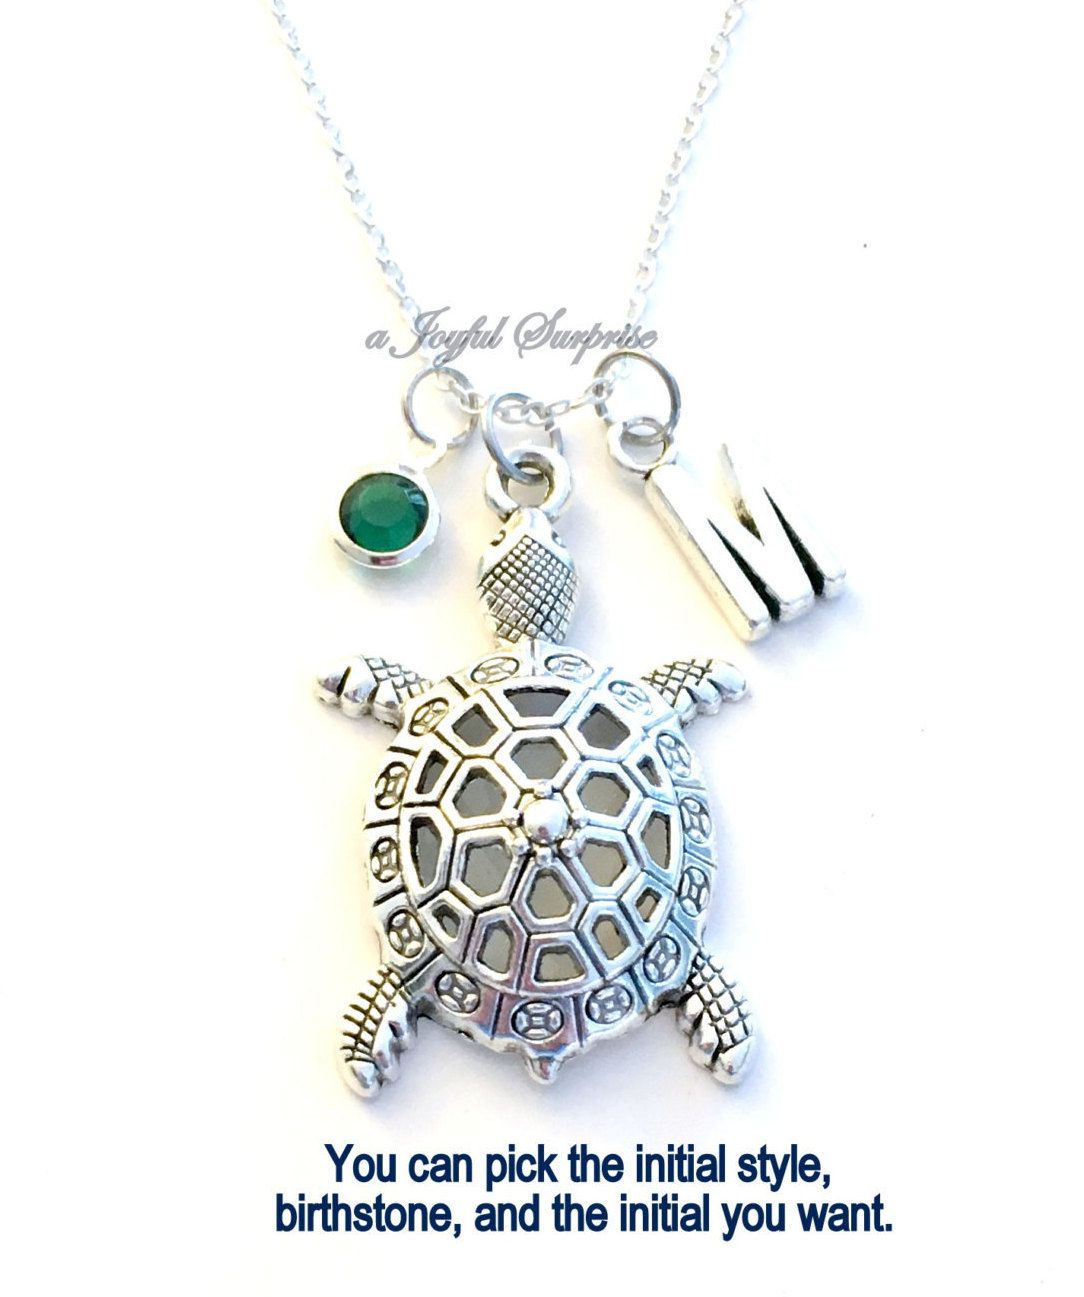 925 Sterling Silver Charm Sea Turtle Unique Tree of Life Pendant Necklace Tortoise Animal Jewelry for Women Girl deGTi7tEo